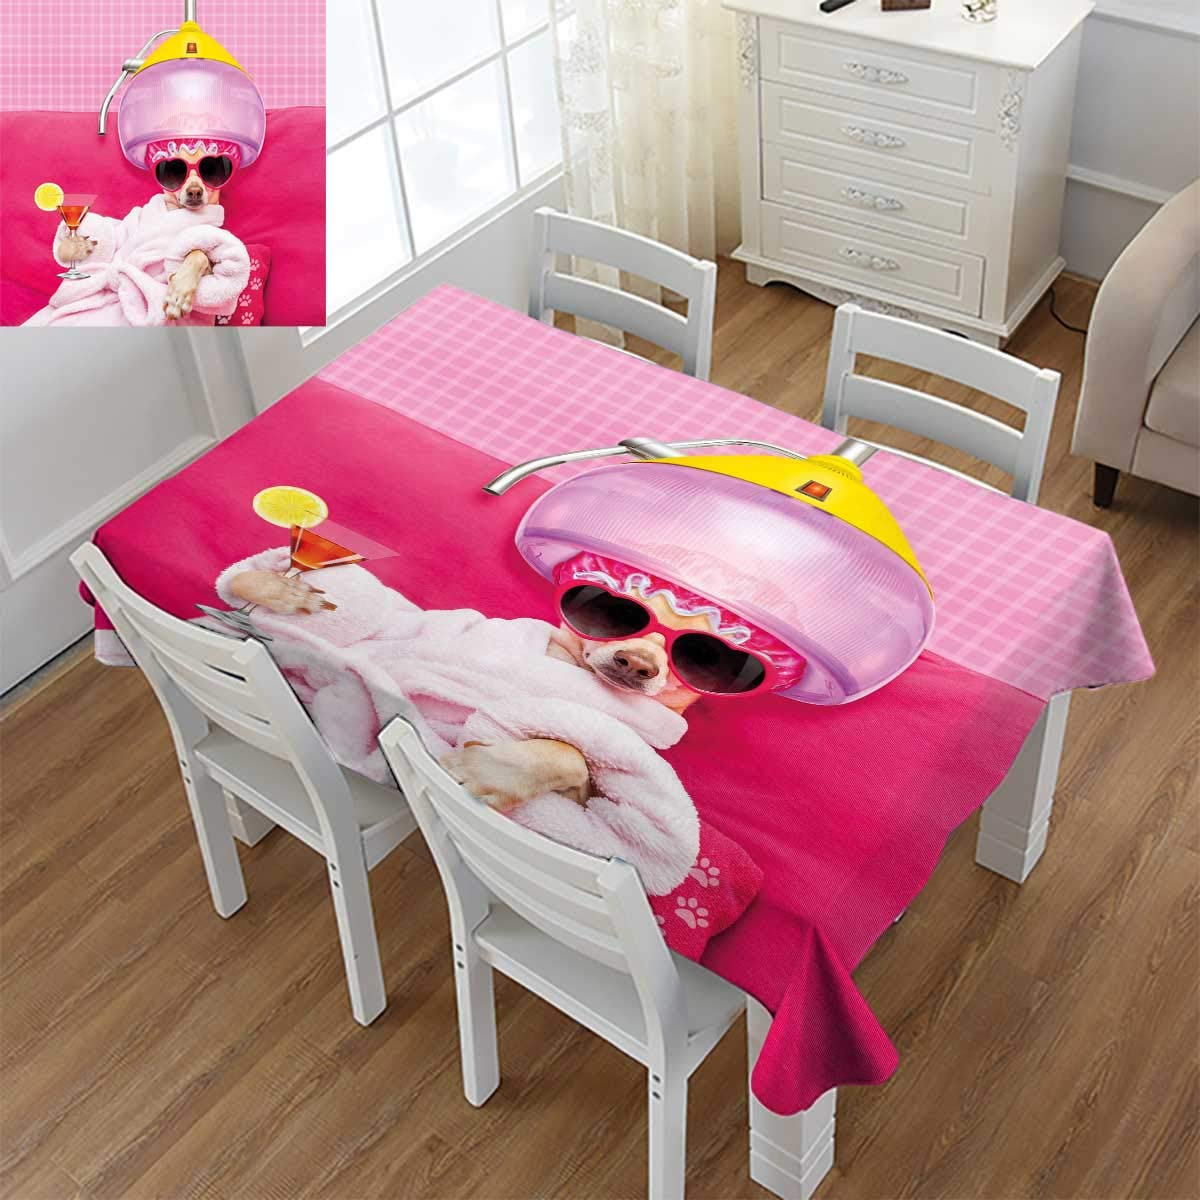 Funny,Dinning Tabletop Decor,Chihuahua Dog Relaxing and Lying in Wellness Spa Fashion Puppy Comic Print,Table Cover for Kitchen,Magenta Baby Pink,Size:60''x102''